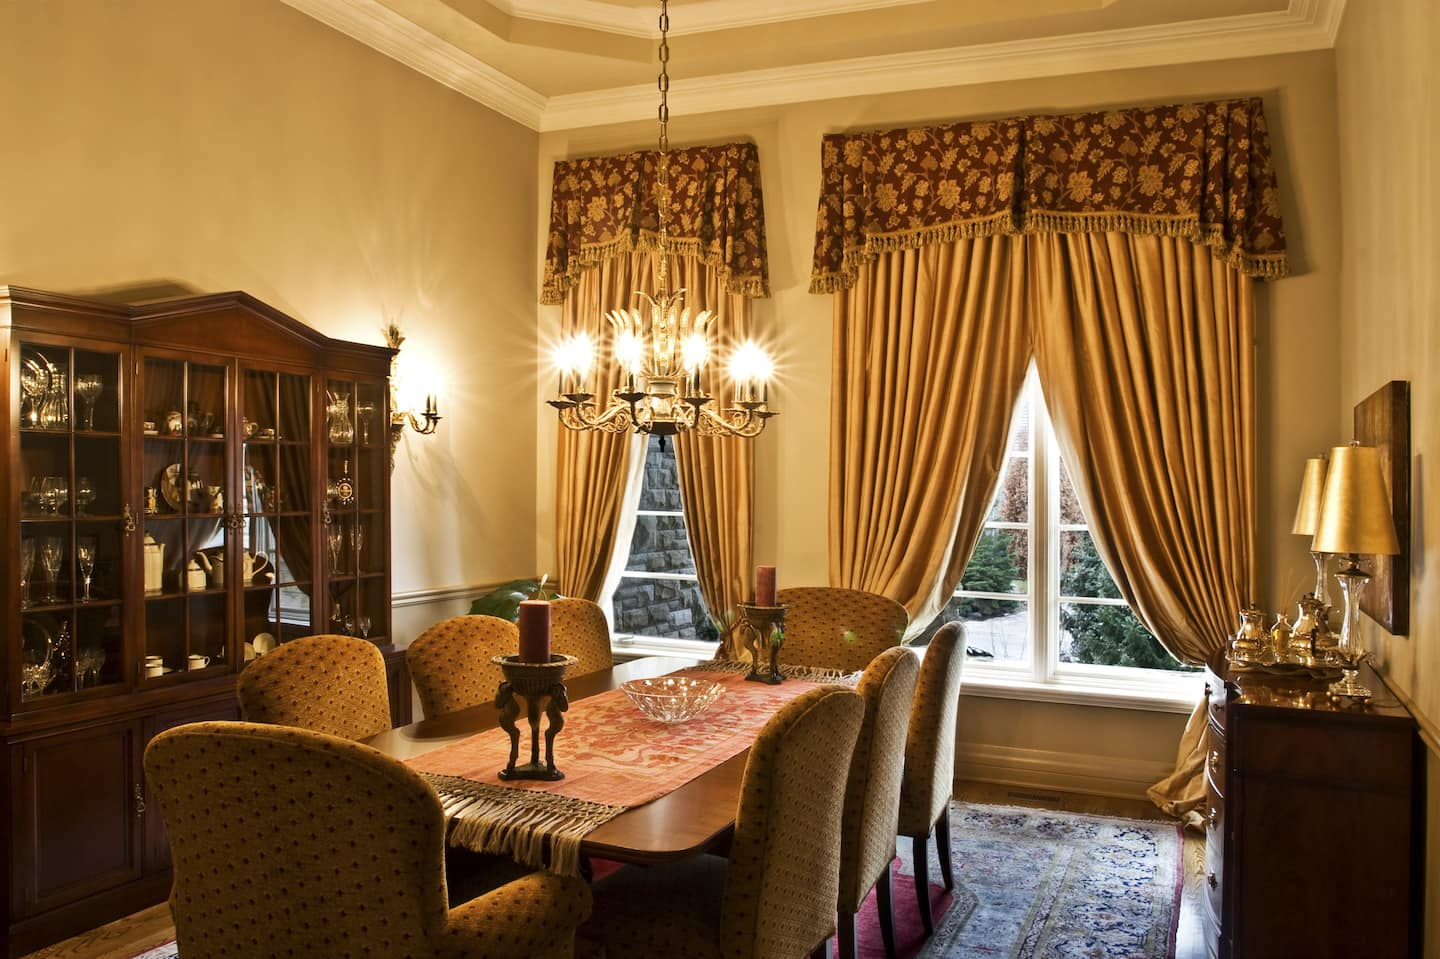 Genial Traditional Formal Dining Room With Gold Curtains And Patterned Valances,  Upholstered Chairs, Large Rug